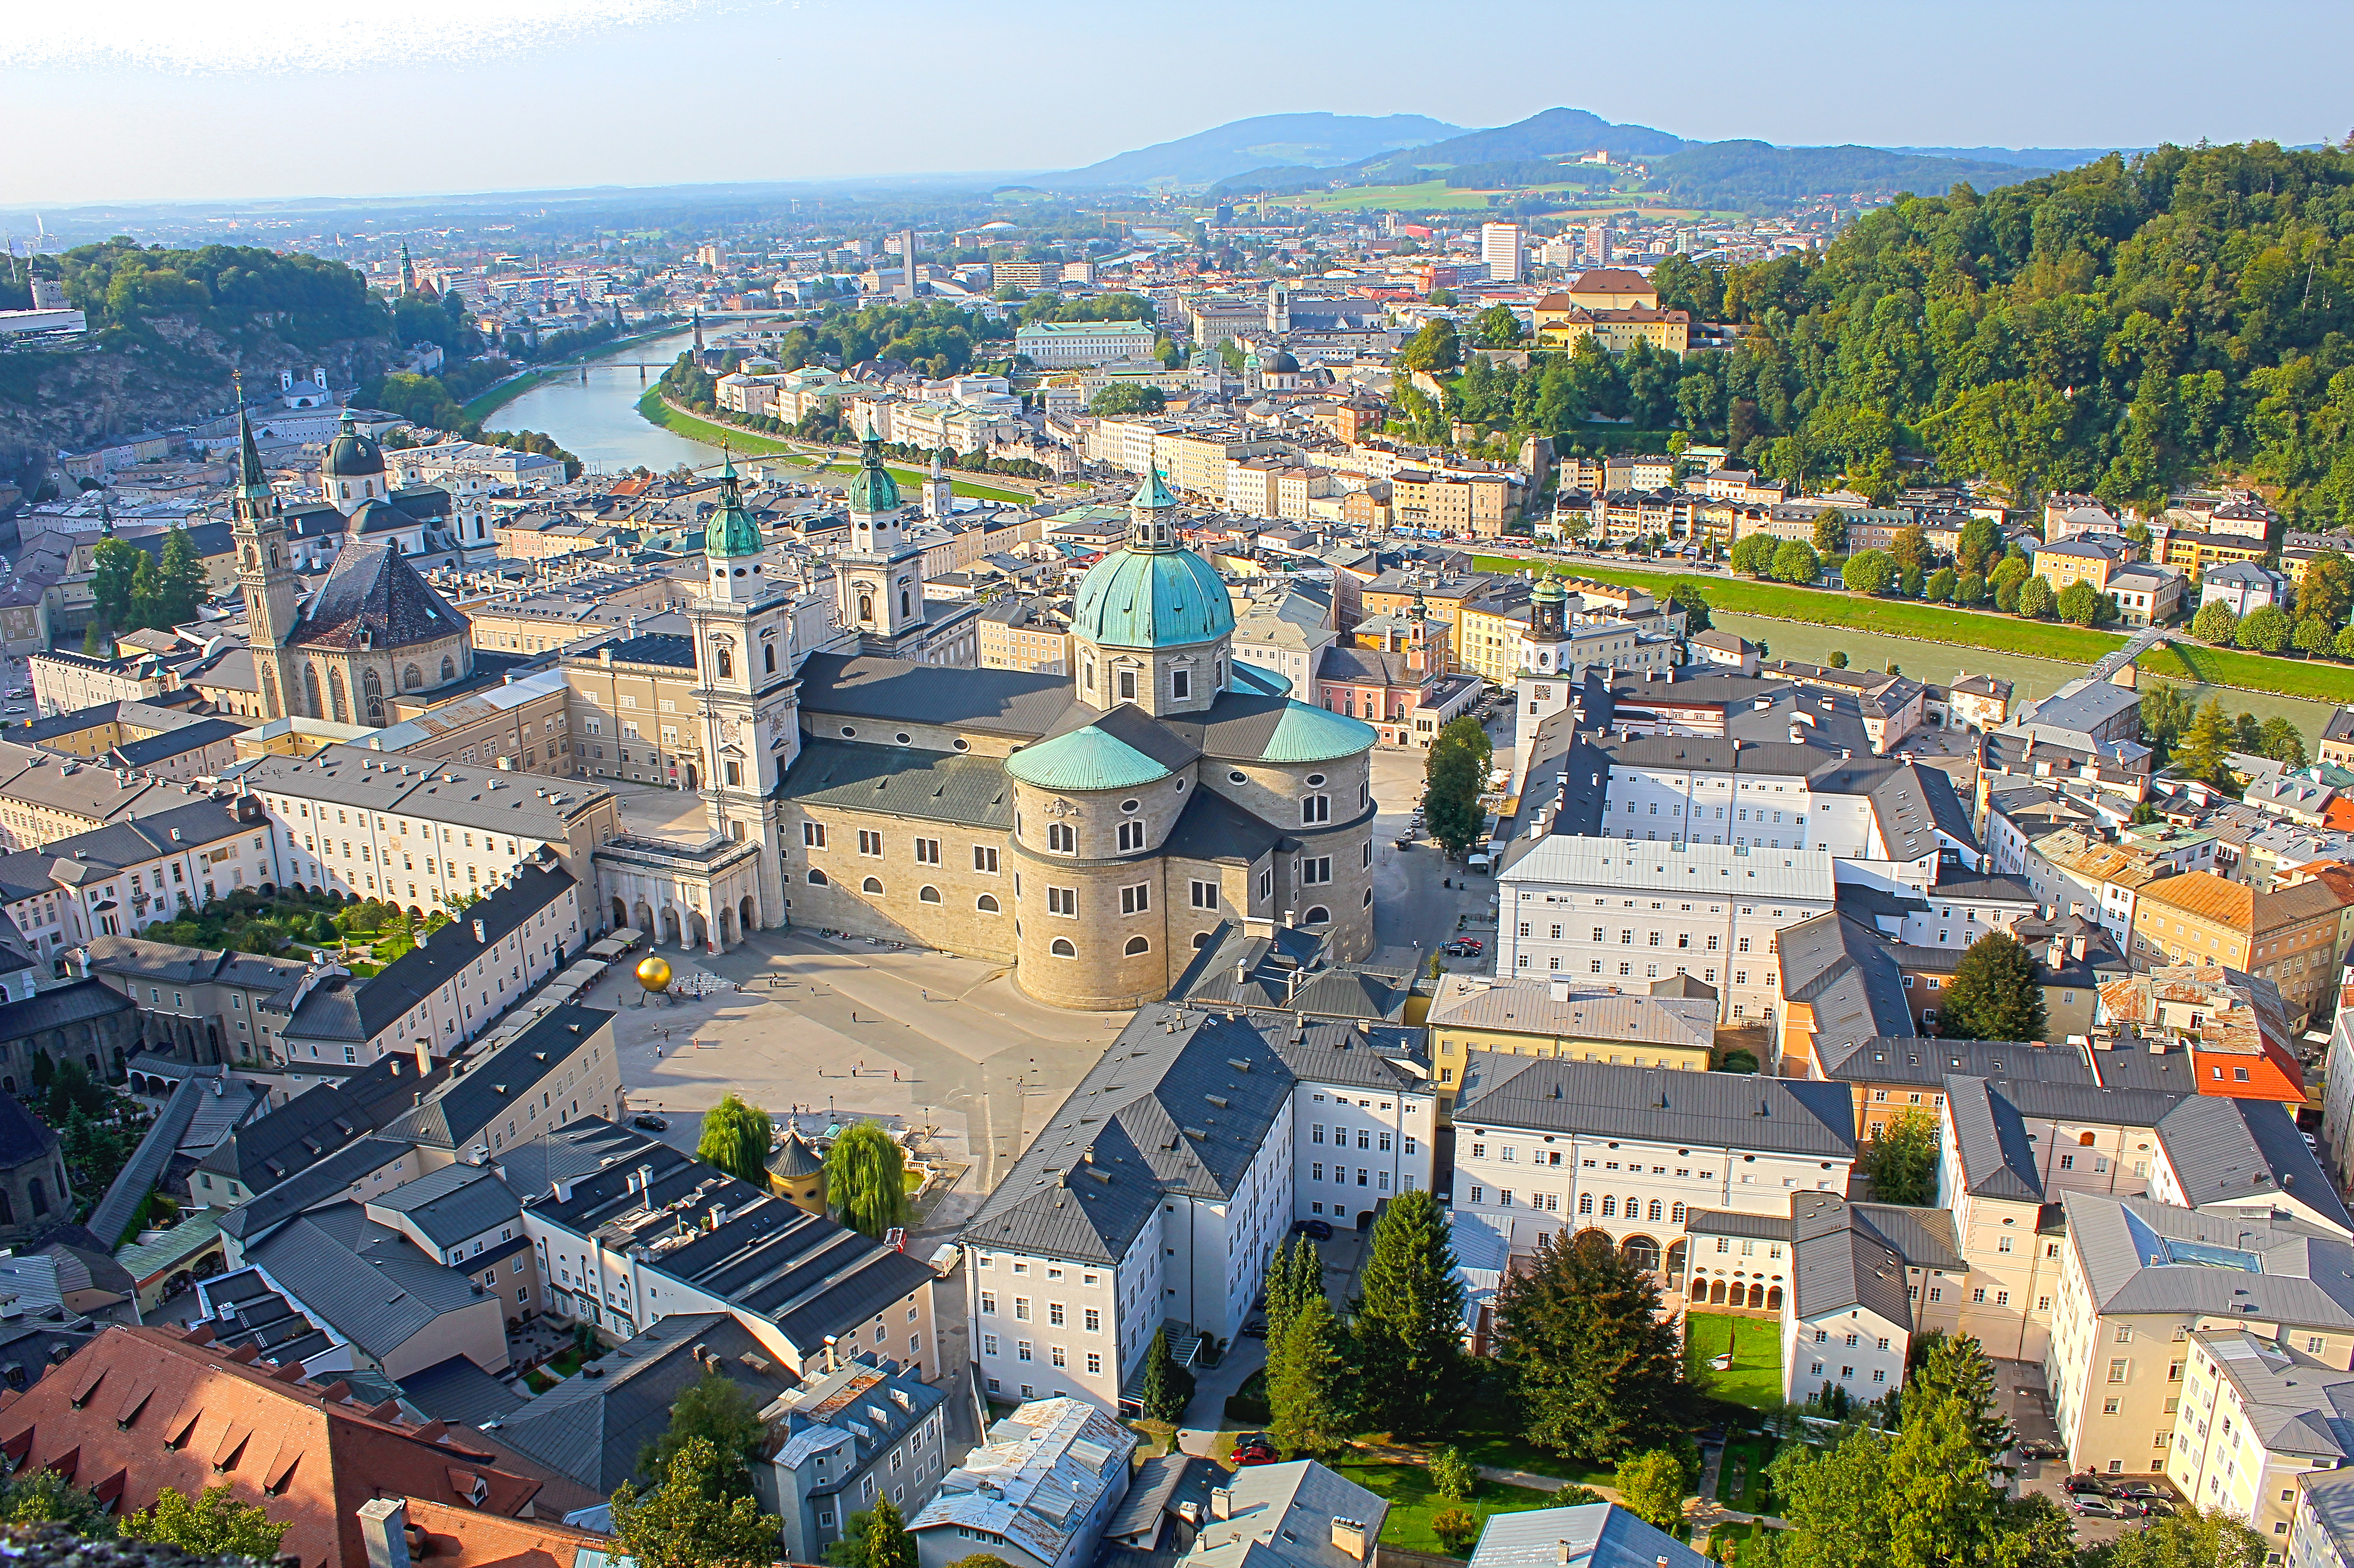 """Experience the beautiful countryside featured in """"The Sound of Music"""" on a day trip from Munich"""